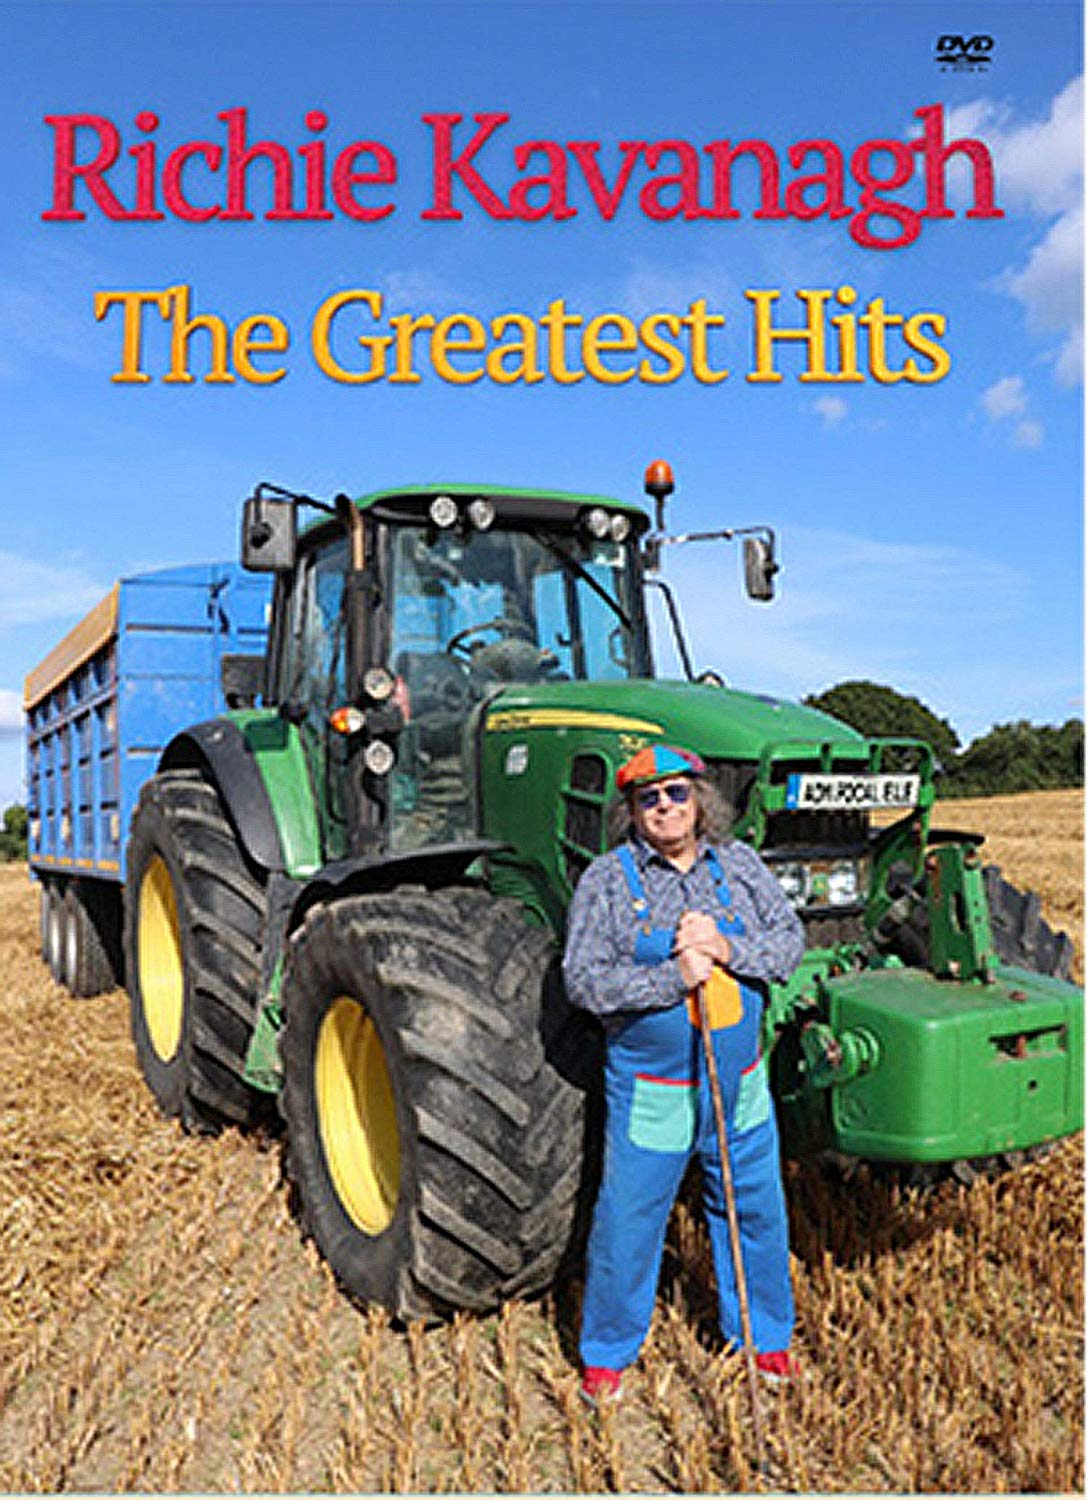 Richie Kavanagh Greatest Hits Dvd[DVD]